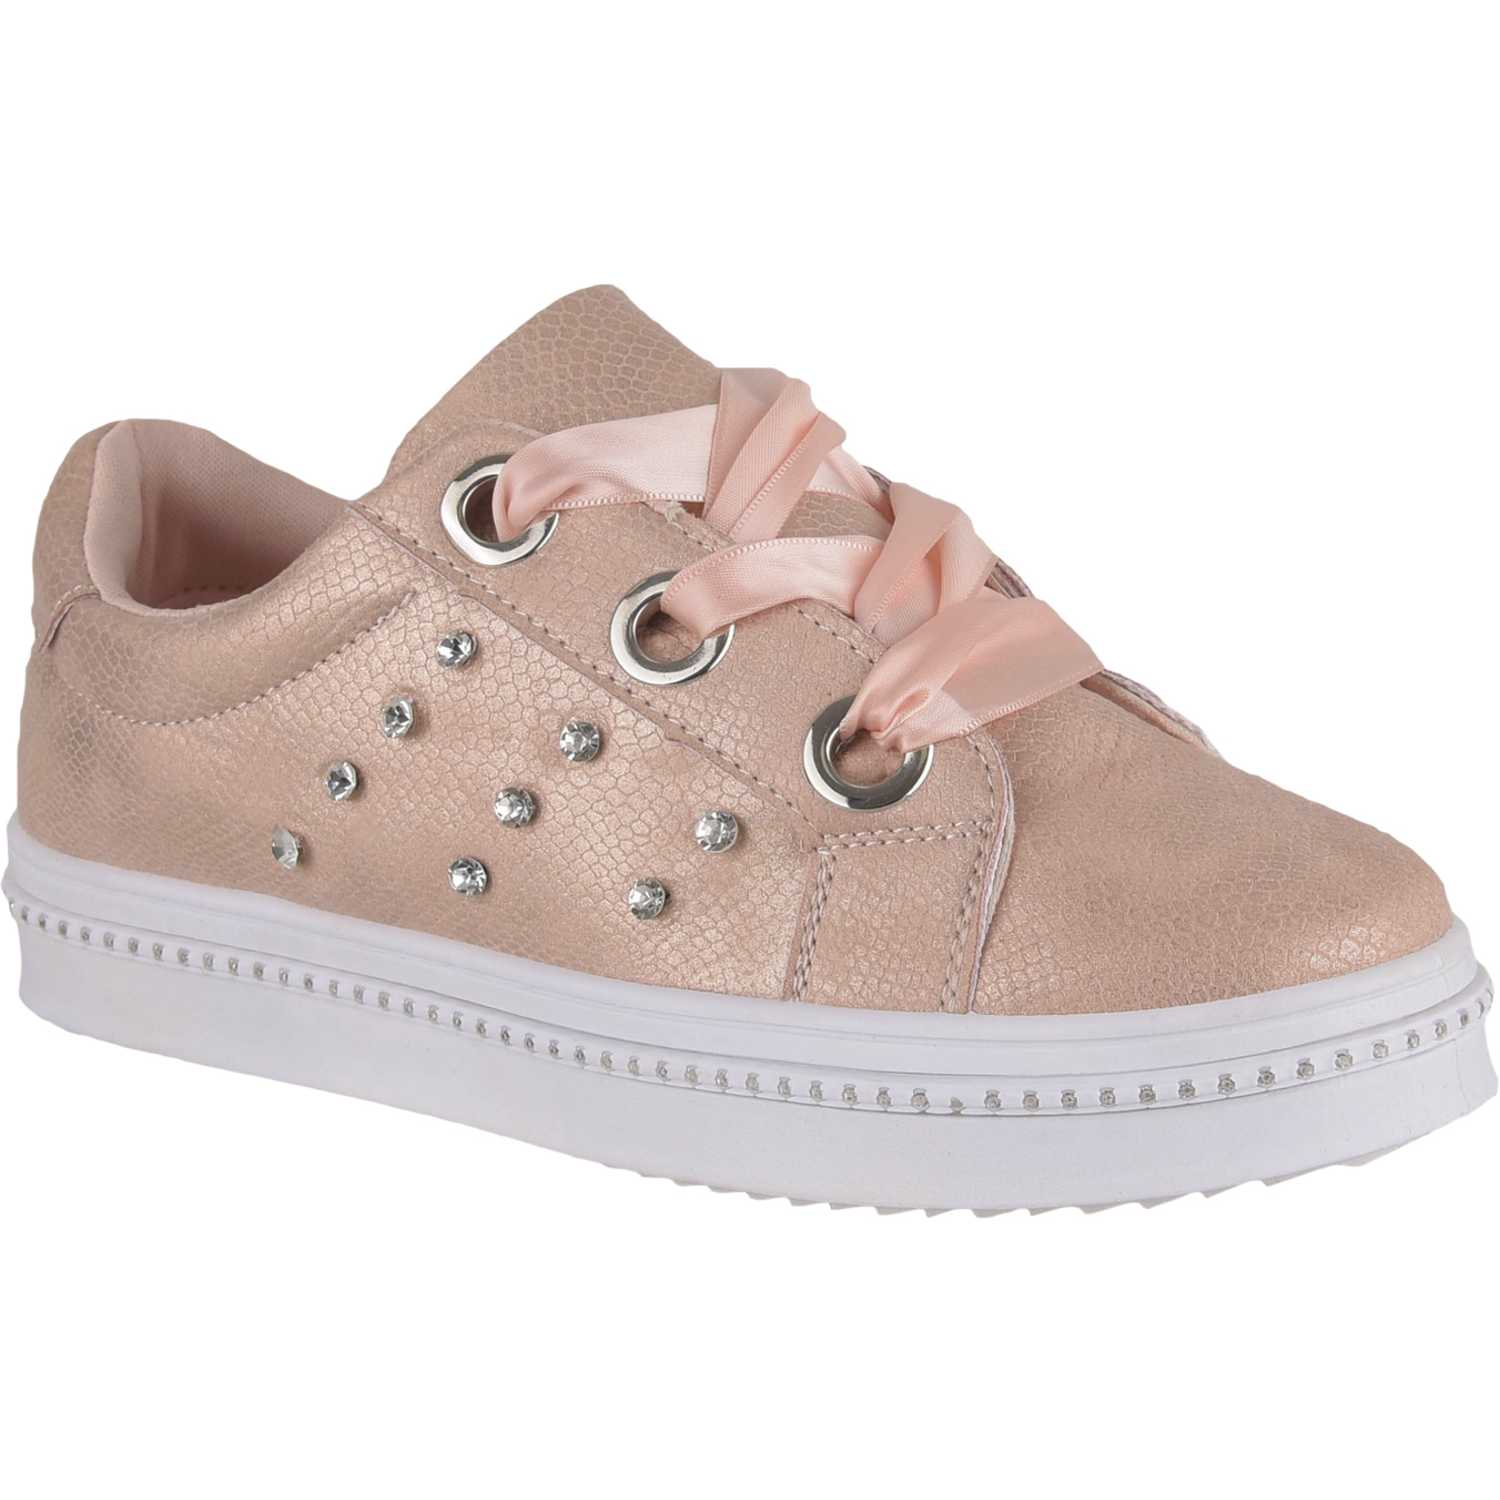 Platanitos ZC 707 Rosado Zapatillas Fashion